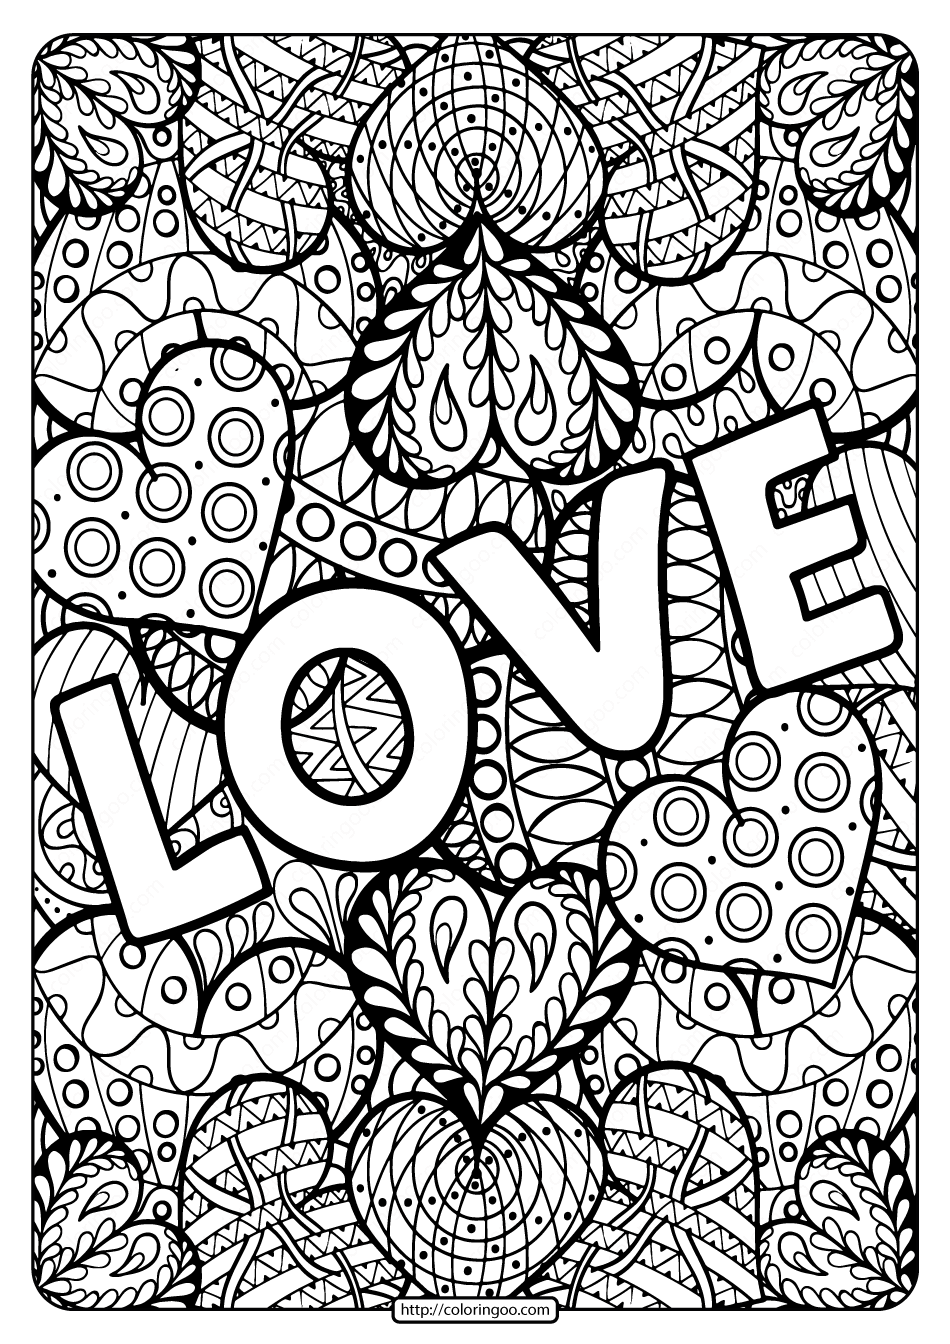 love coloring pages printable get this free printable i love you coloring pages for kids pages coloring love printable